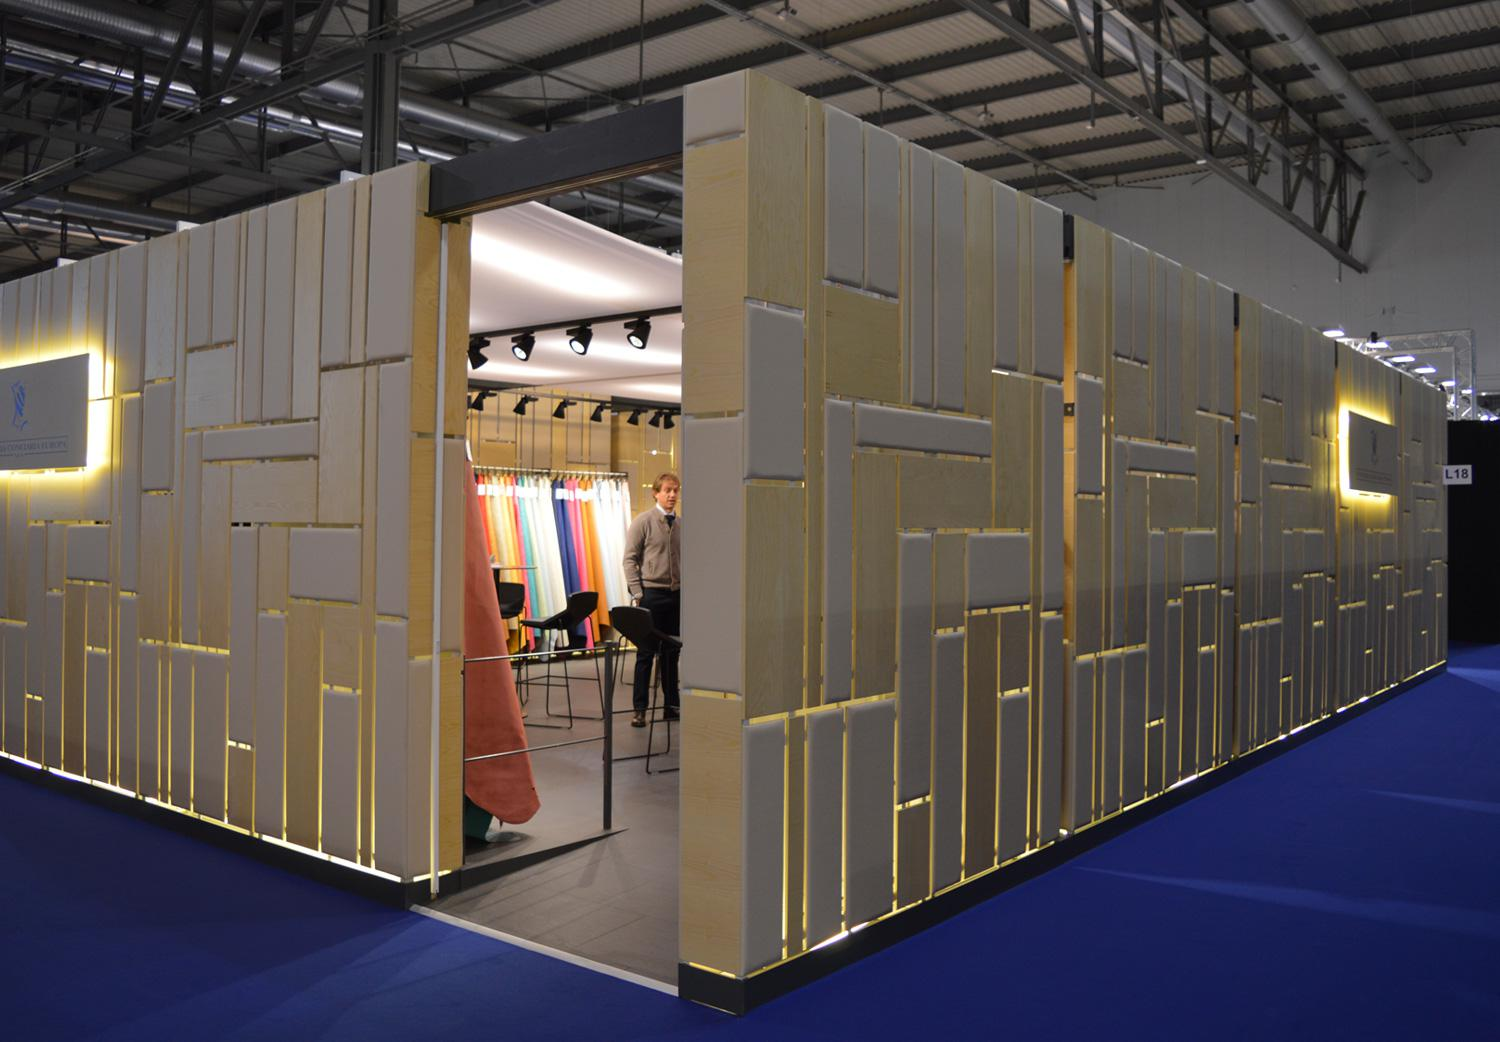 Exhibition hall built by Millepelli